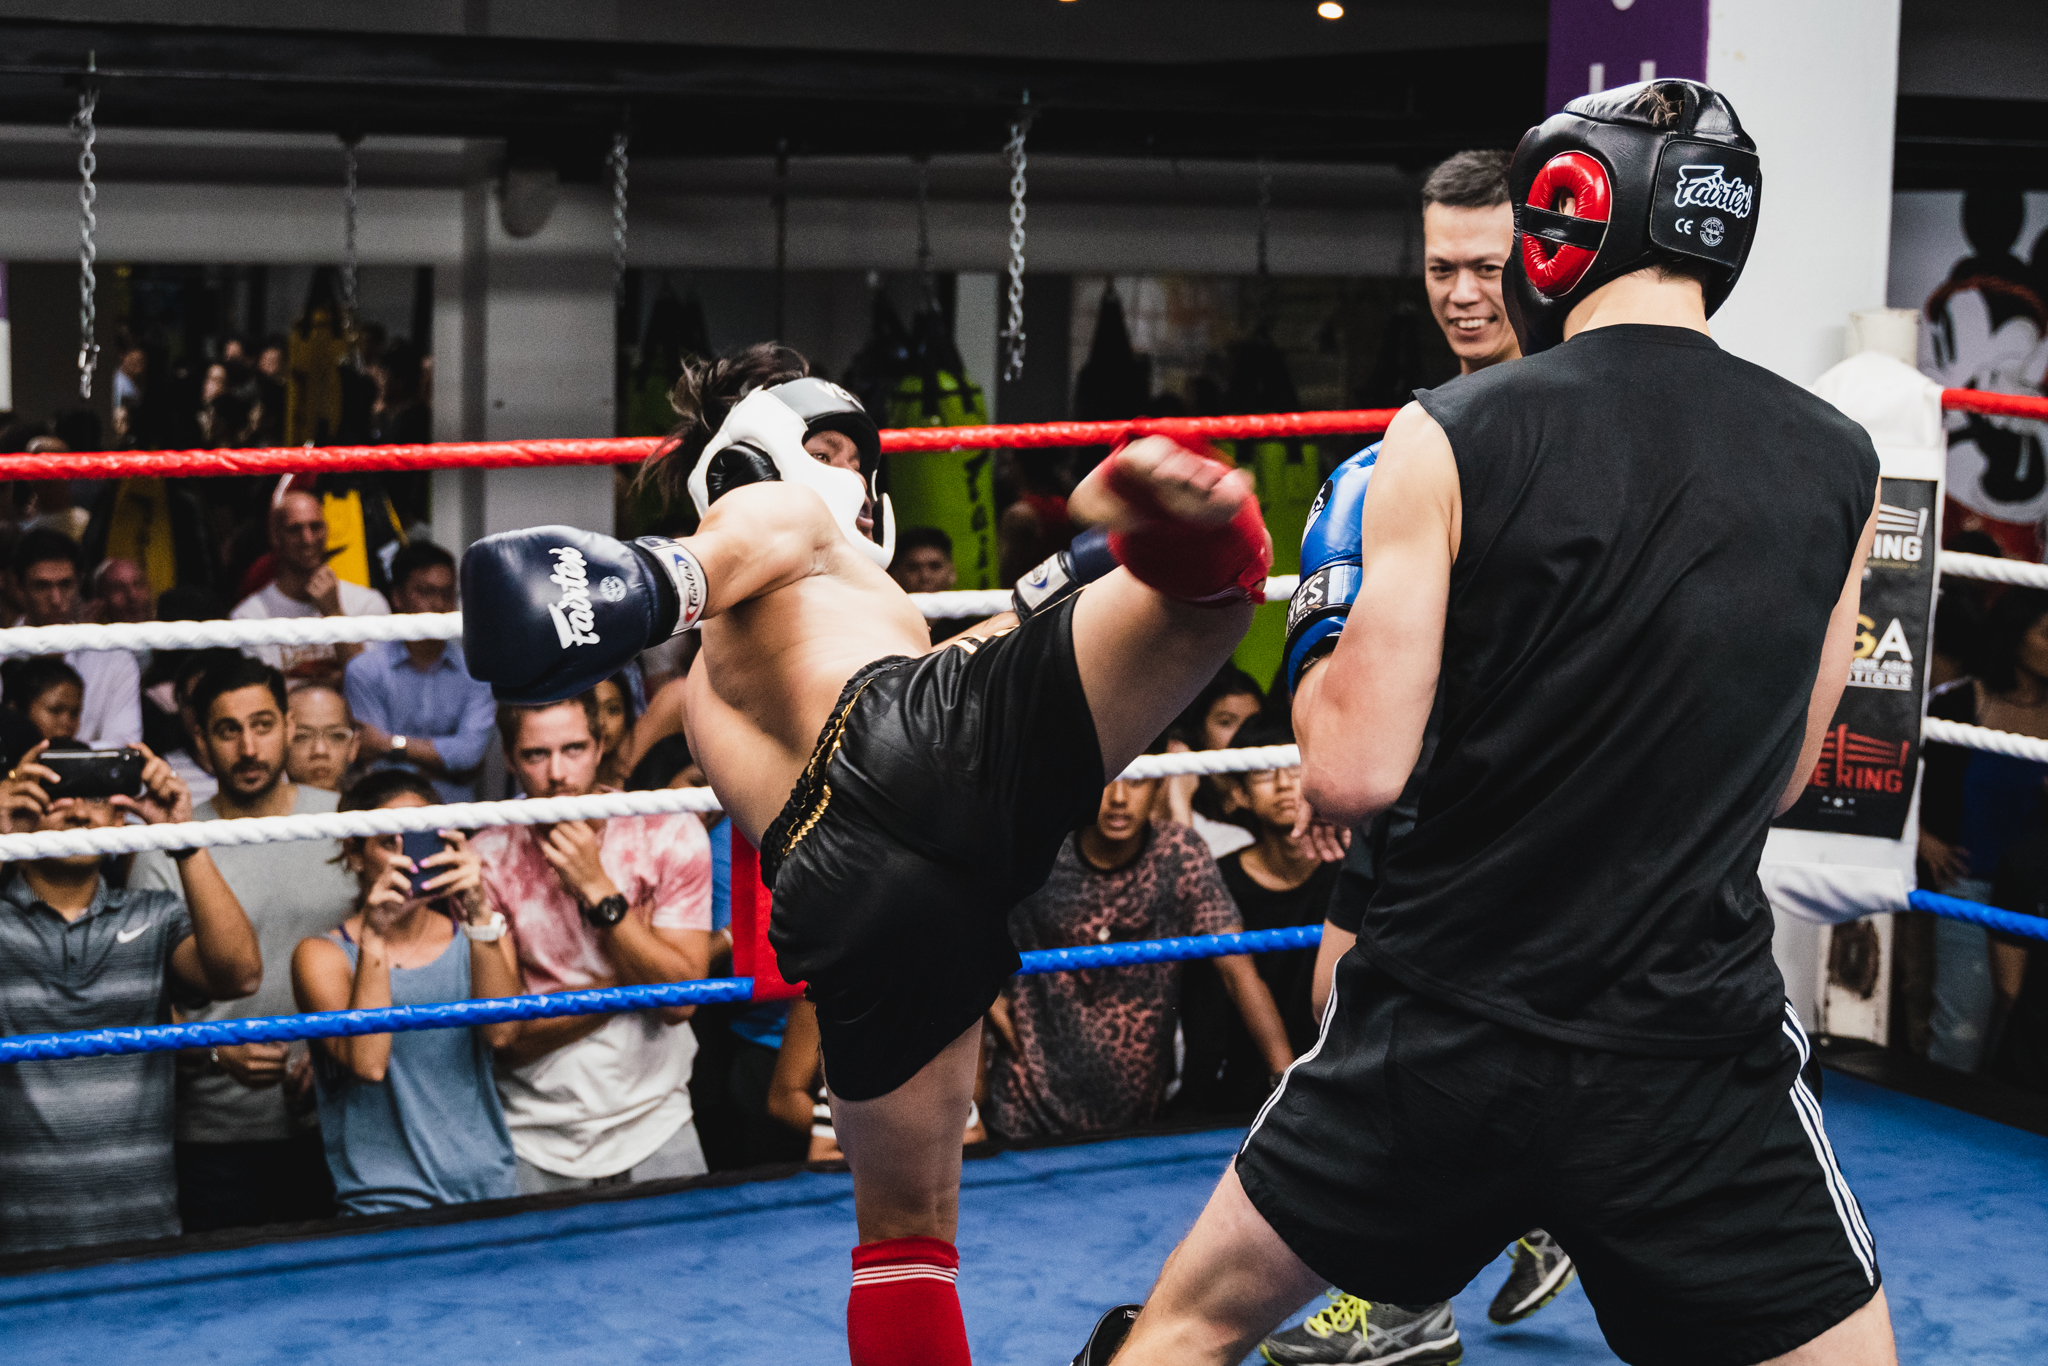 Muay Thai at the January 2019 FFF